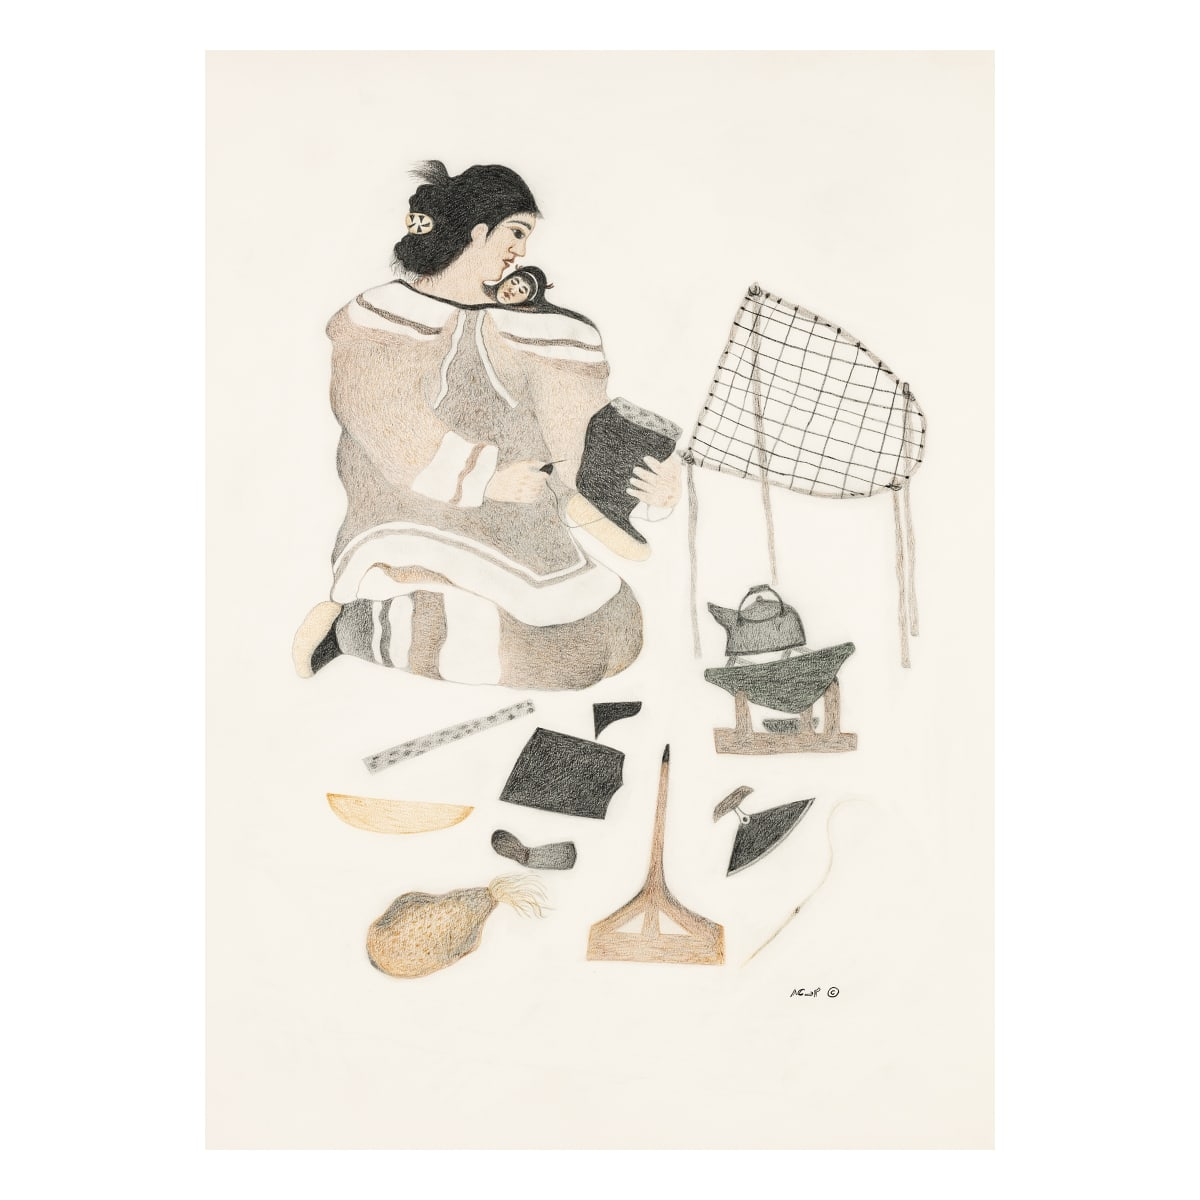 Pitaloosie Saila, R.C.A. (1942-) KINNGAIT (CAPE DORSET) Mother at Camp, Sewing a Kamik, 2012 REALIZED: $4,560